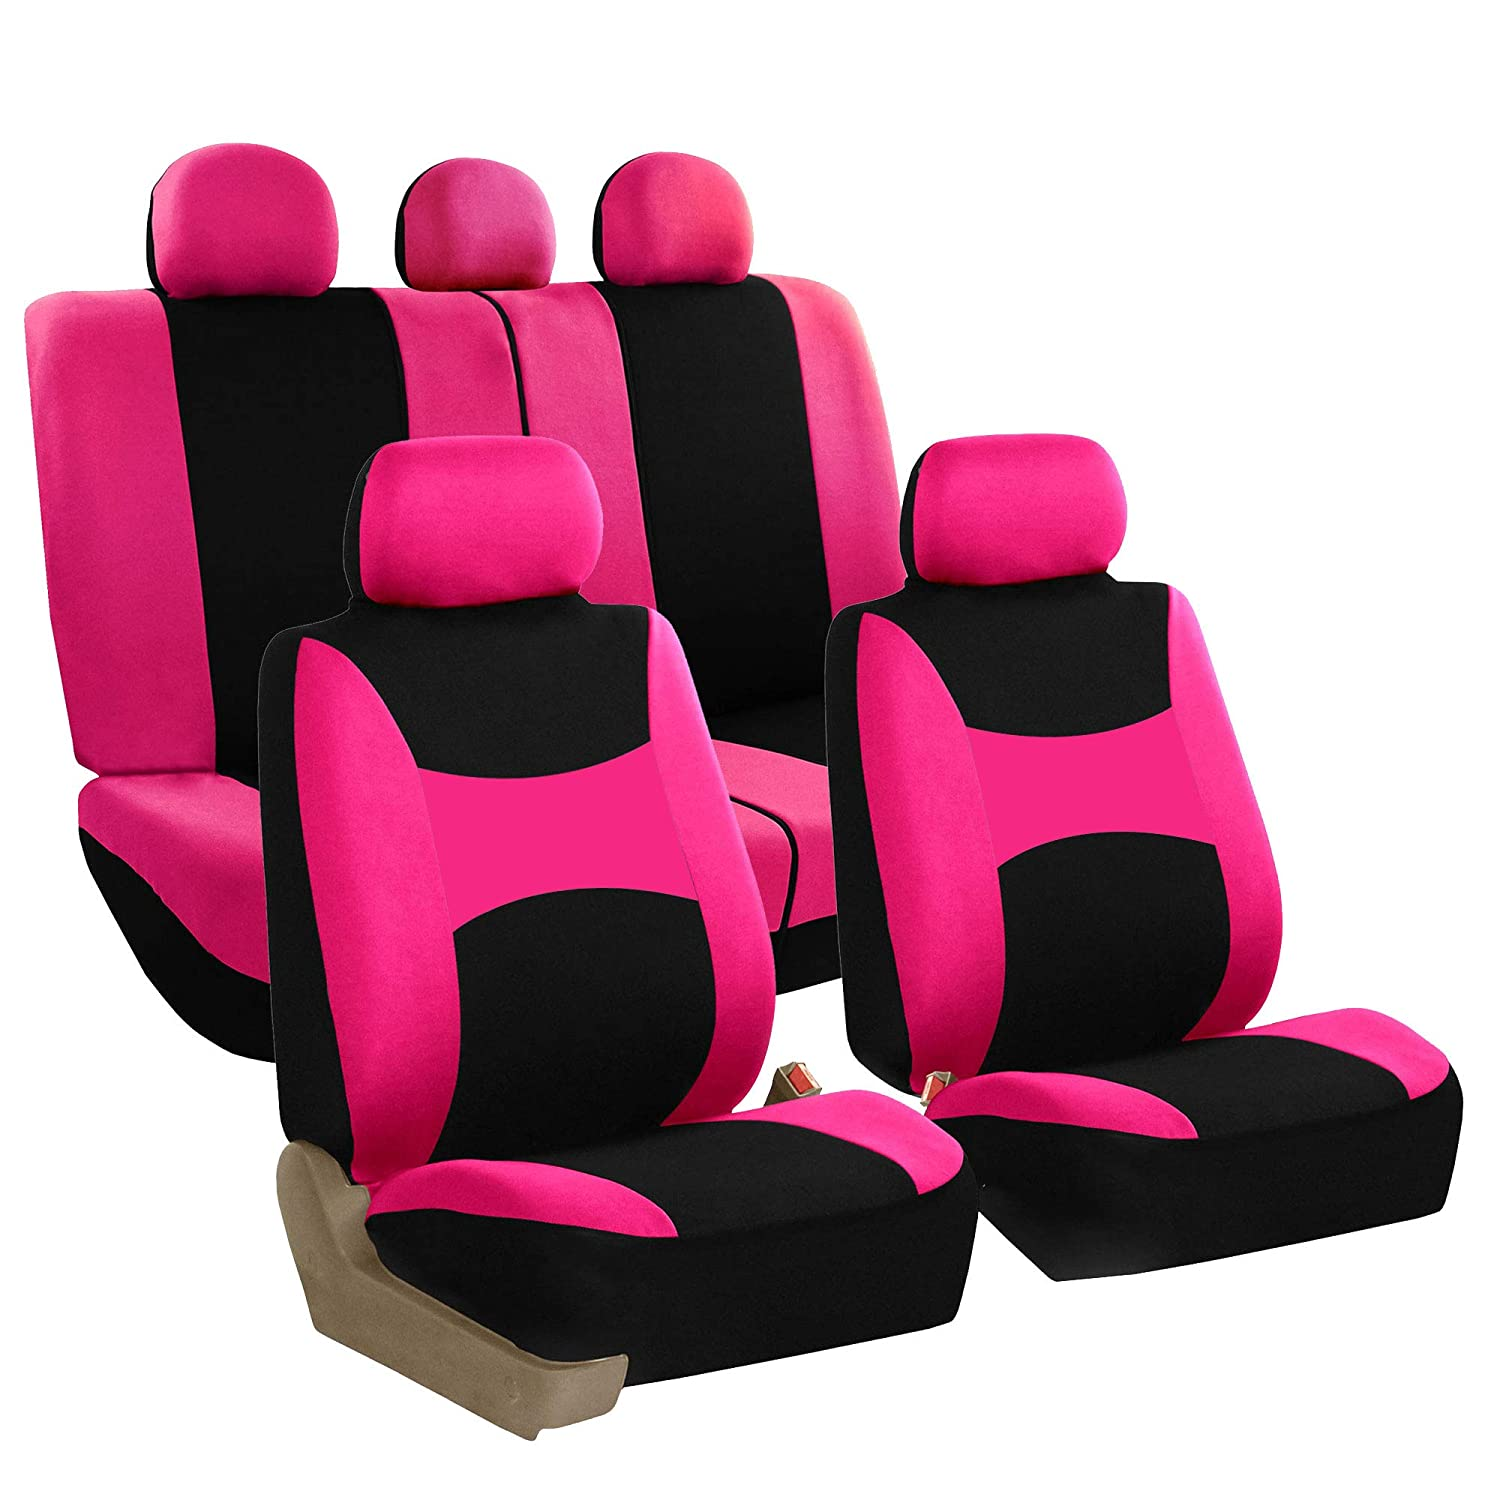 or Van FH Group FB030115-SEAT Light /& Breezy Burgundy//Black Cloth Seat Cover Set Airbag /& Split Ready- Fit Most Car SUV Truck